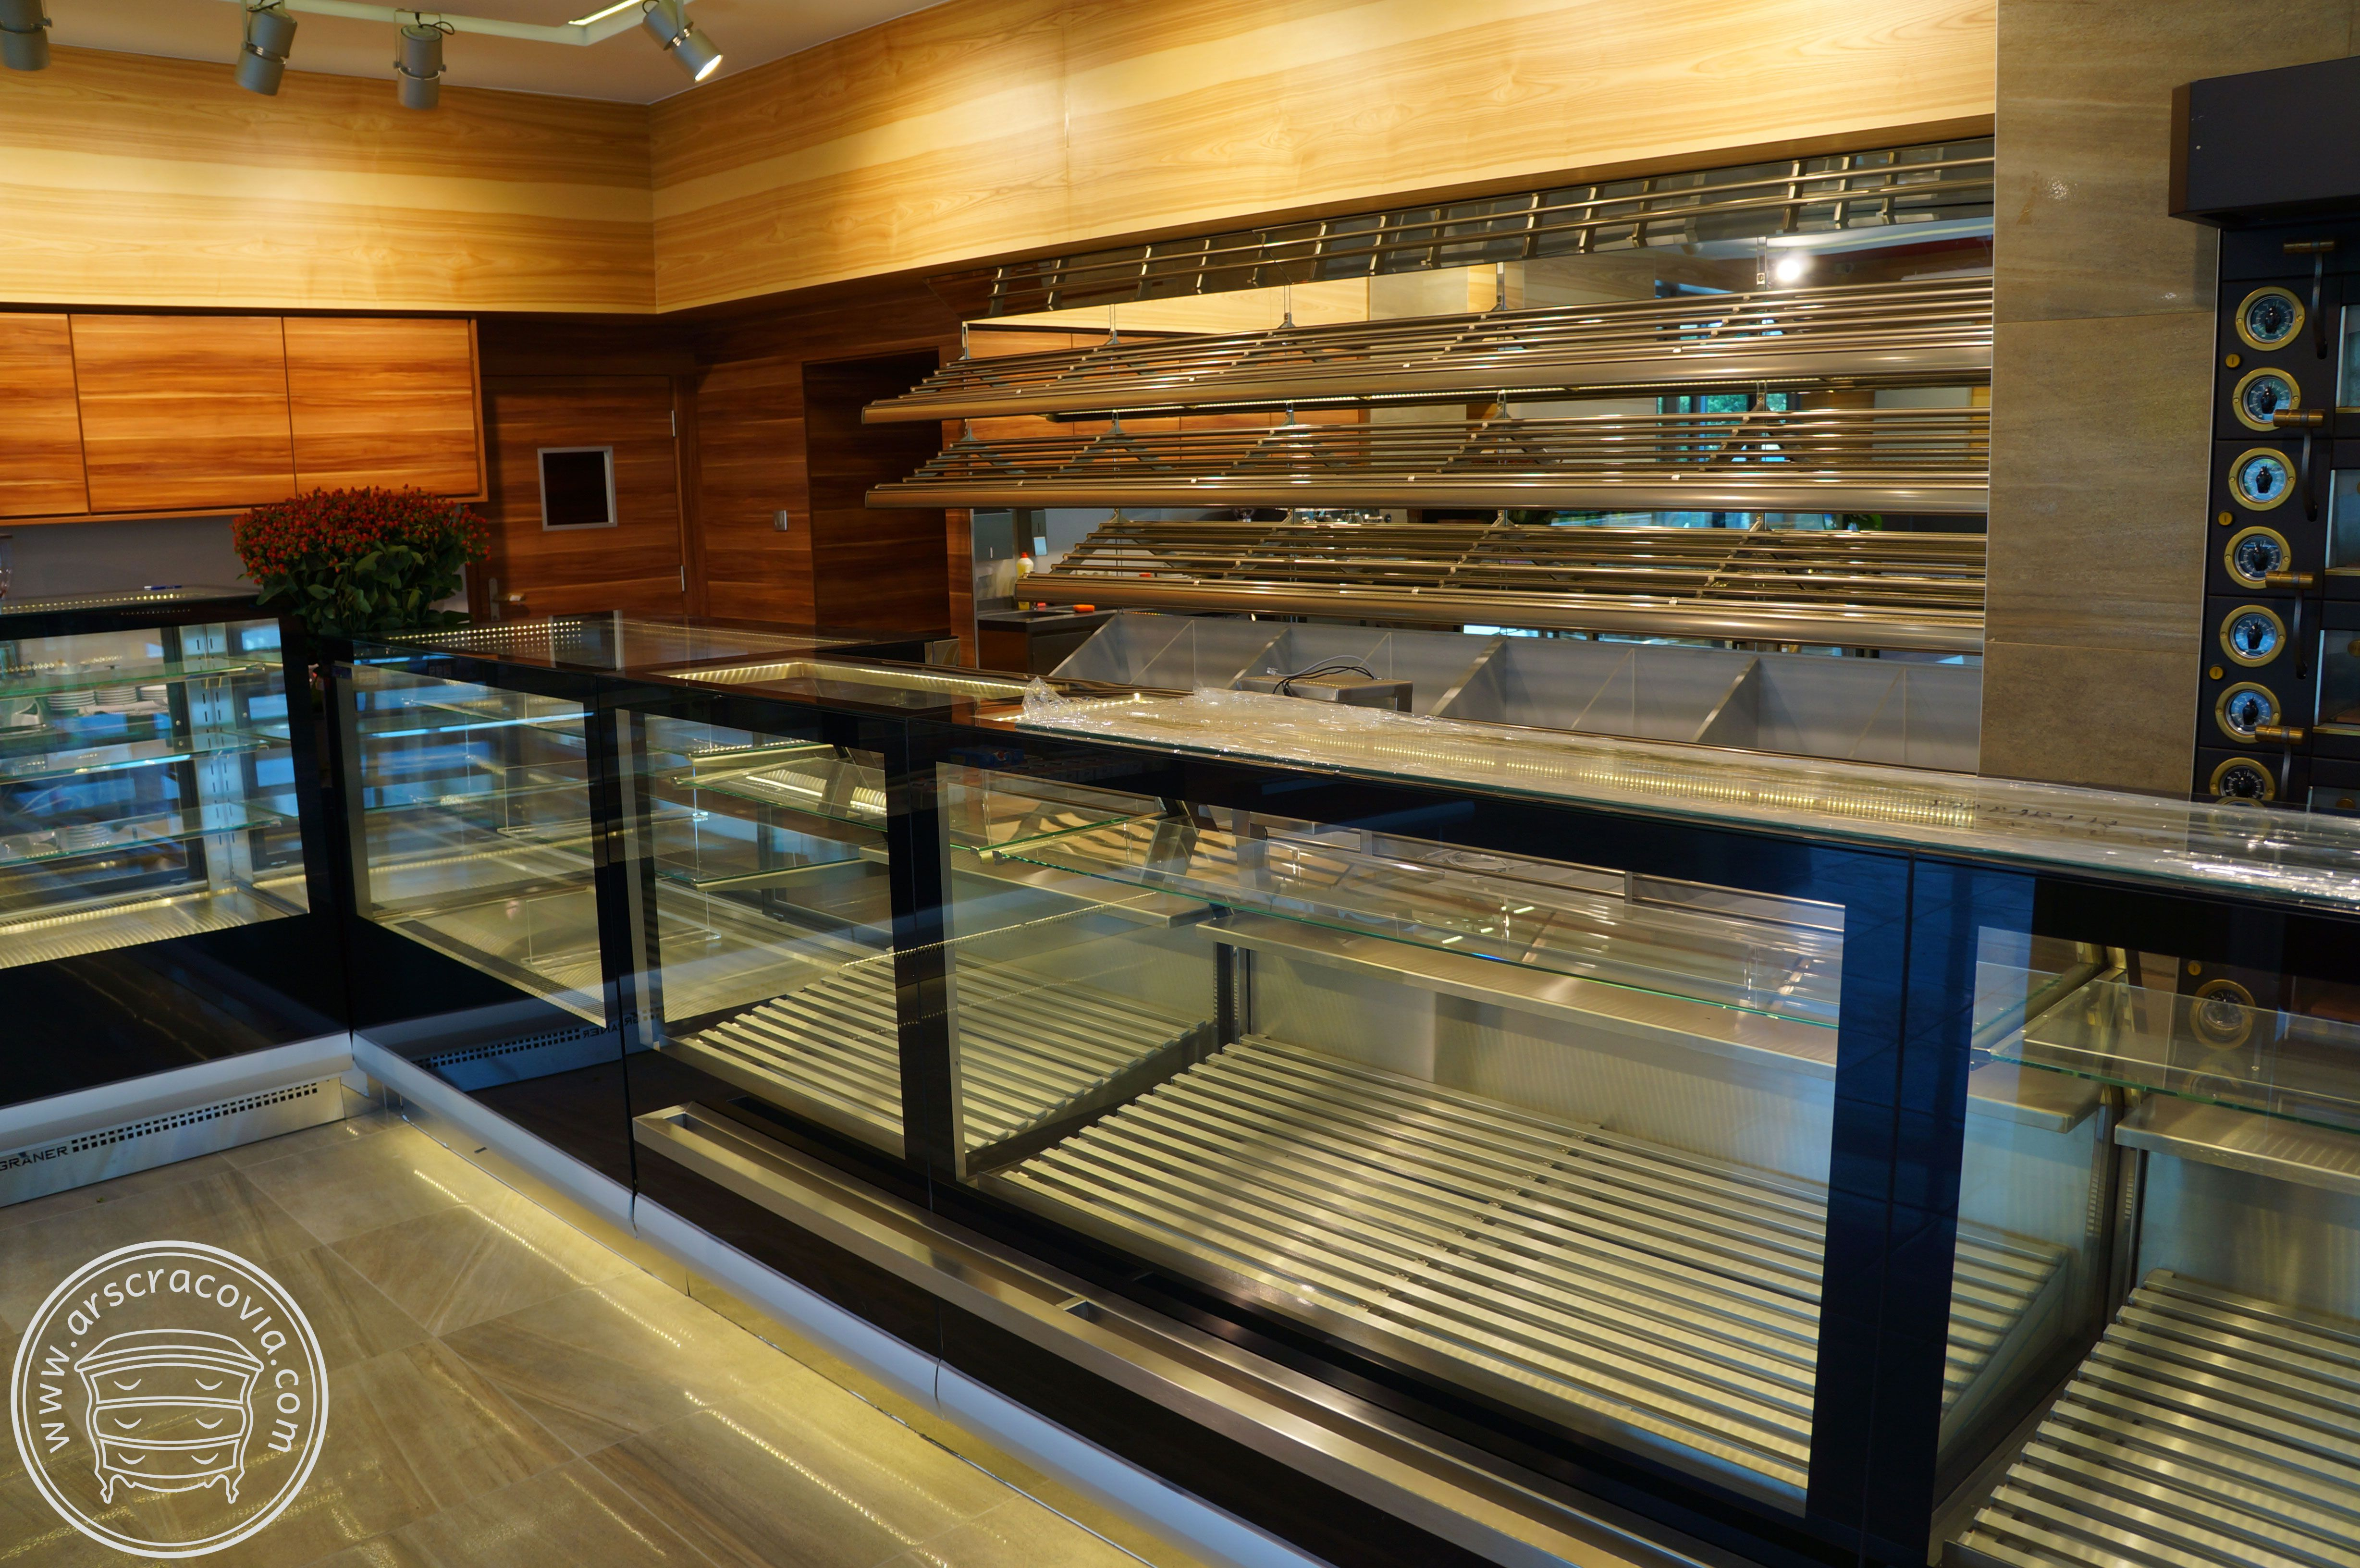 Steel illuminated bread shelves with bread boxes, …